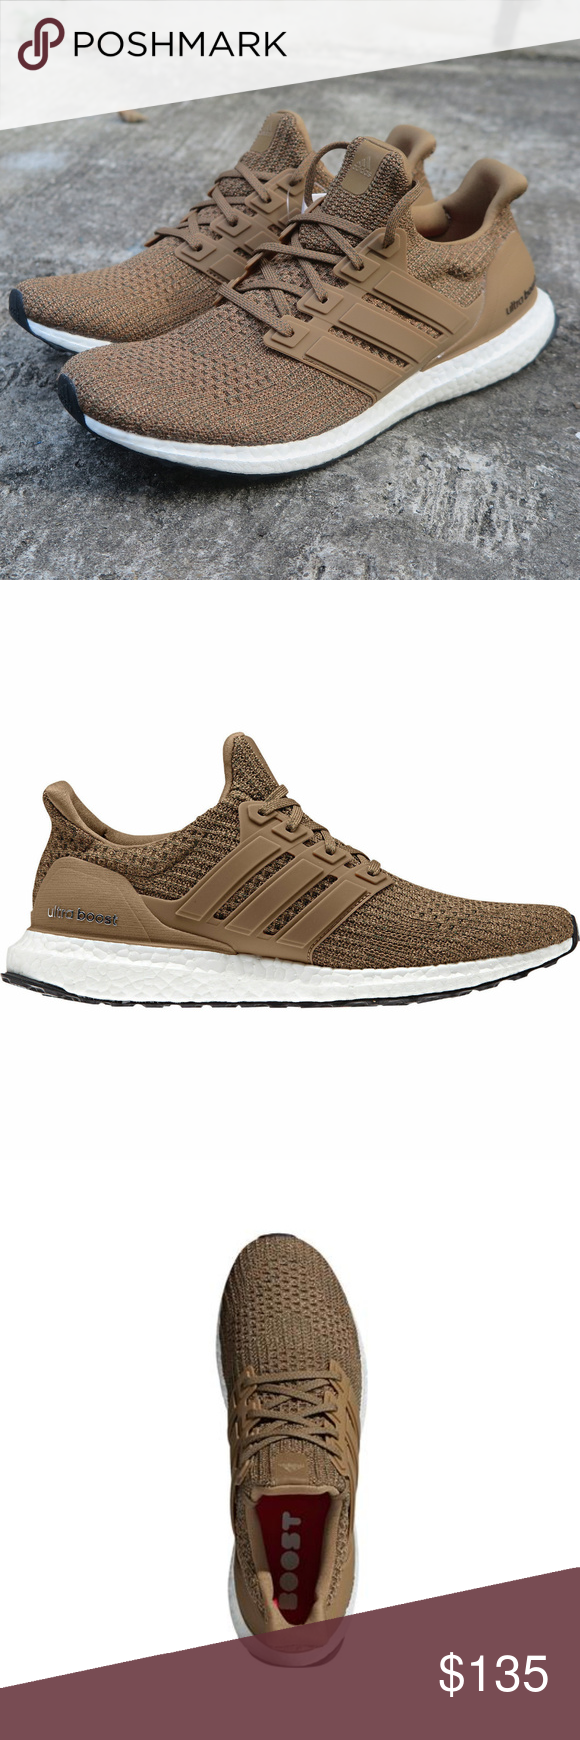 low priced a8620 071cf Adidas UltraBoost Running Shoes Ultra Boost CM8118 Raw ...